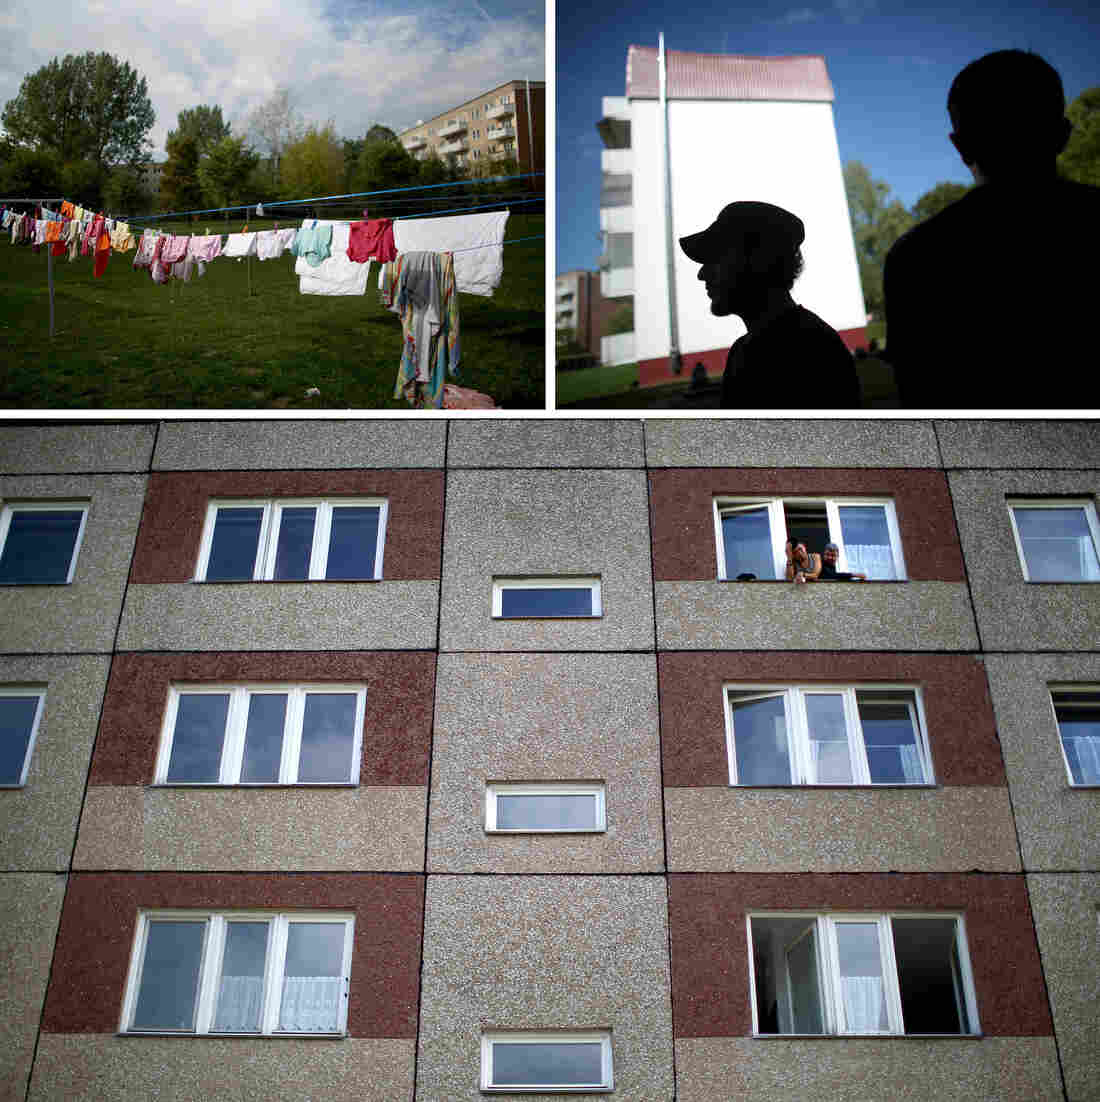 Syrian refugees look out of the windows of the Pentagon apartments, where they are temporally being housed in New Hardenberg, Germany.